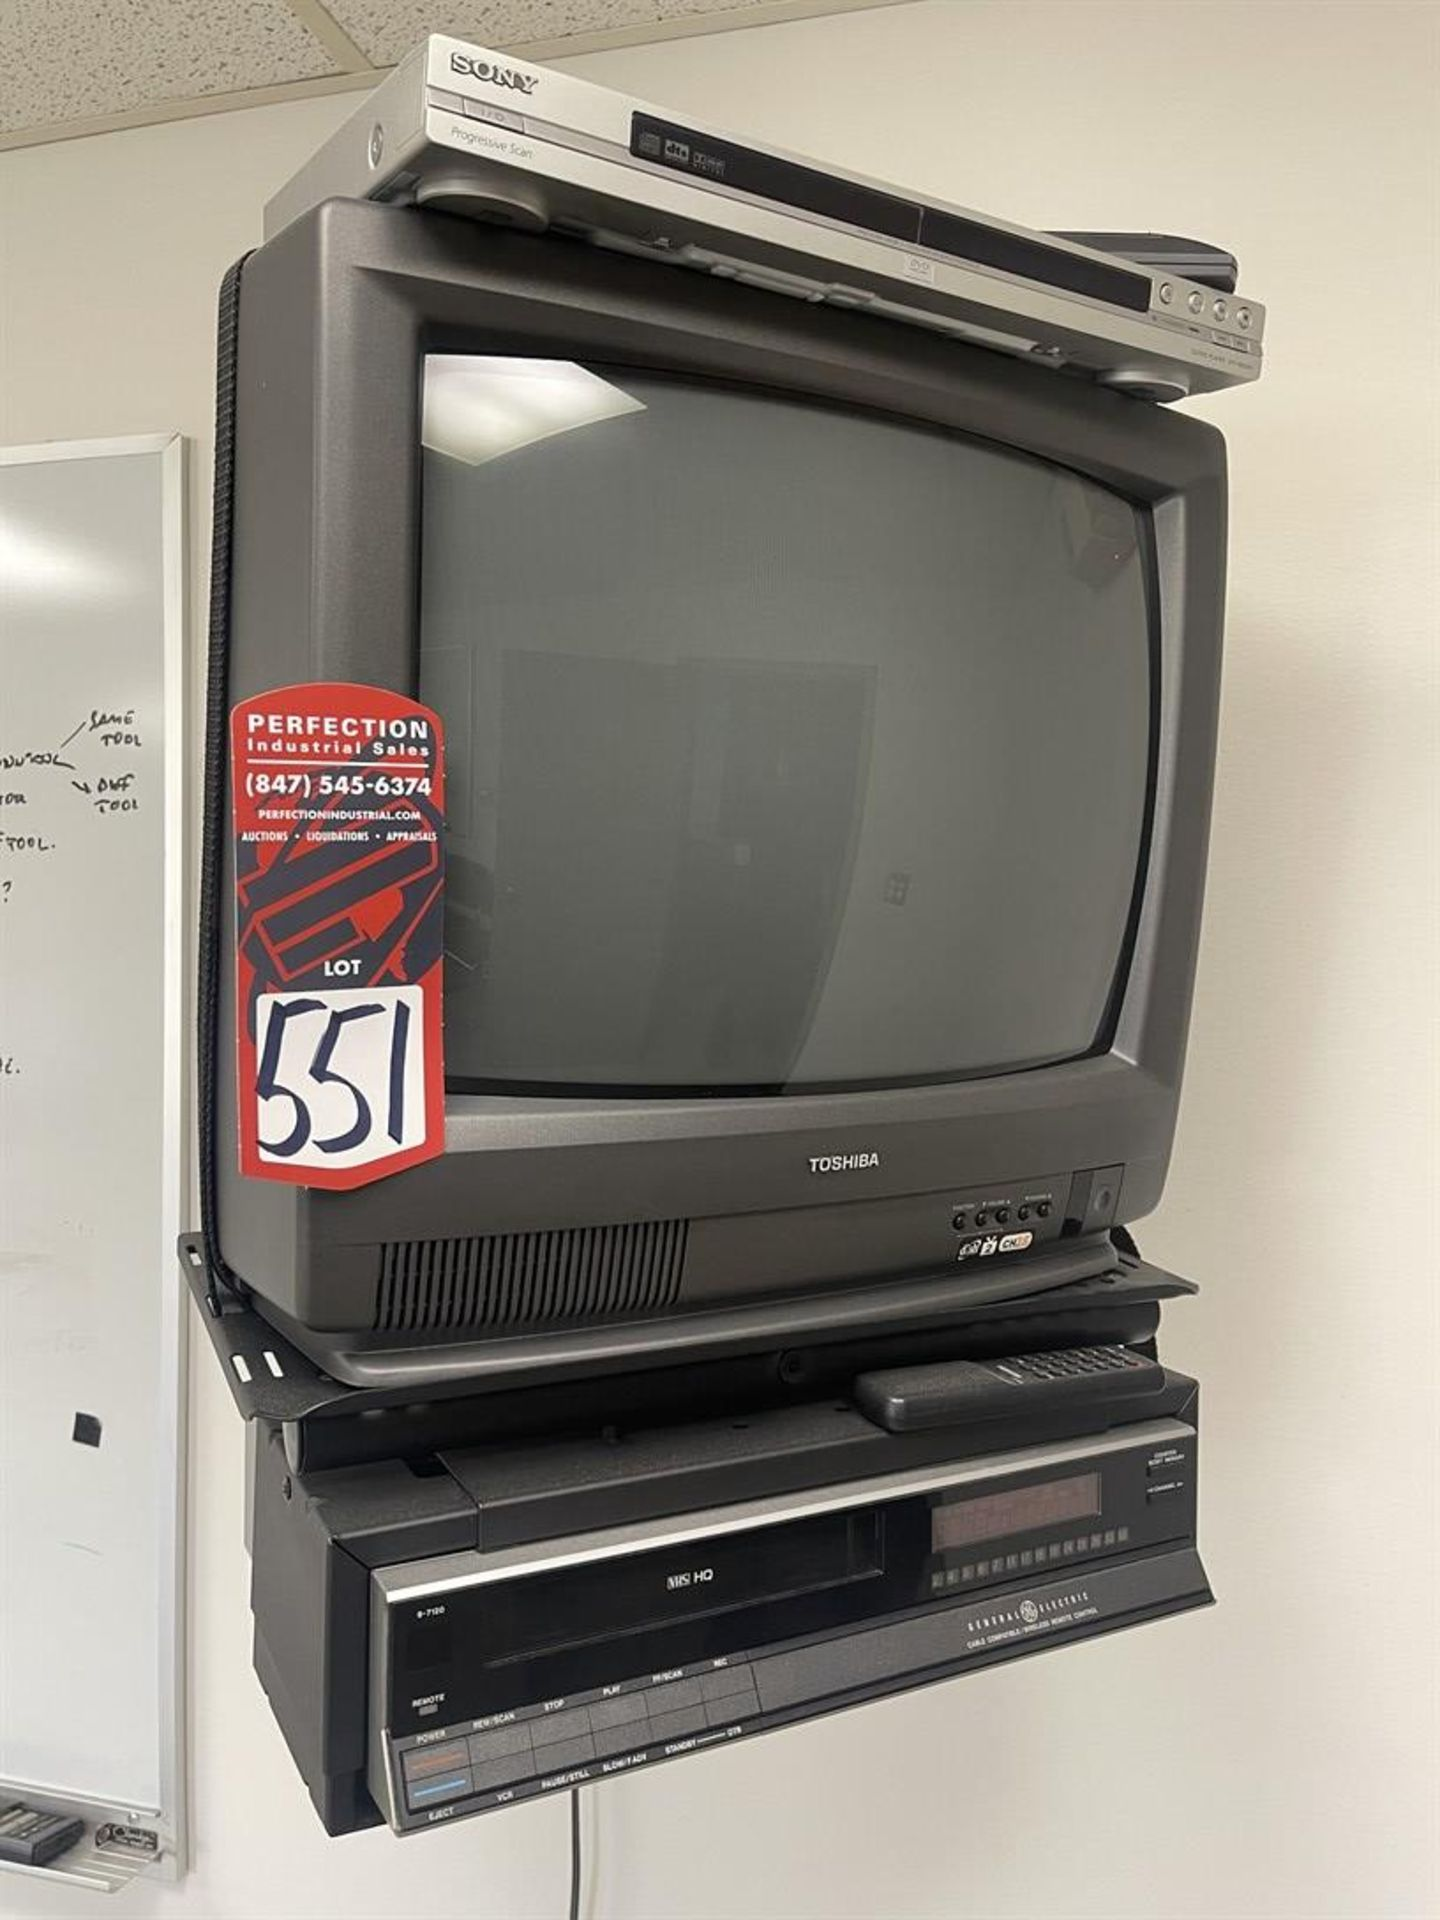 Wall Mount w/ Toshiba TC and GE VCR